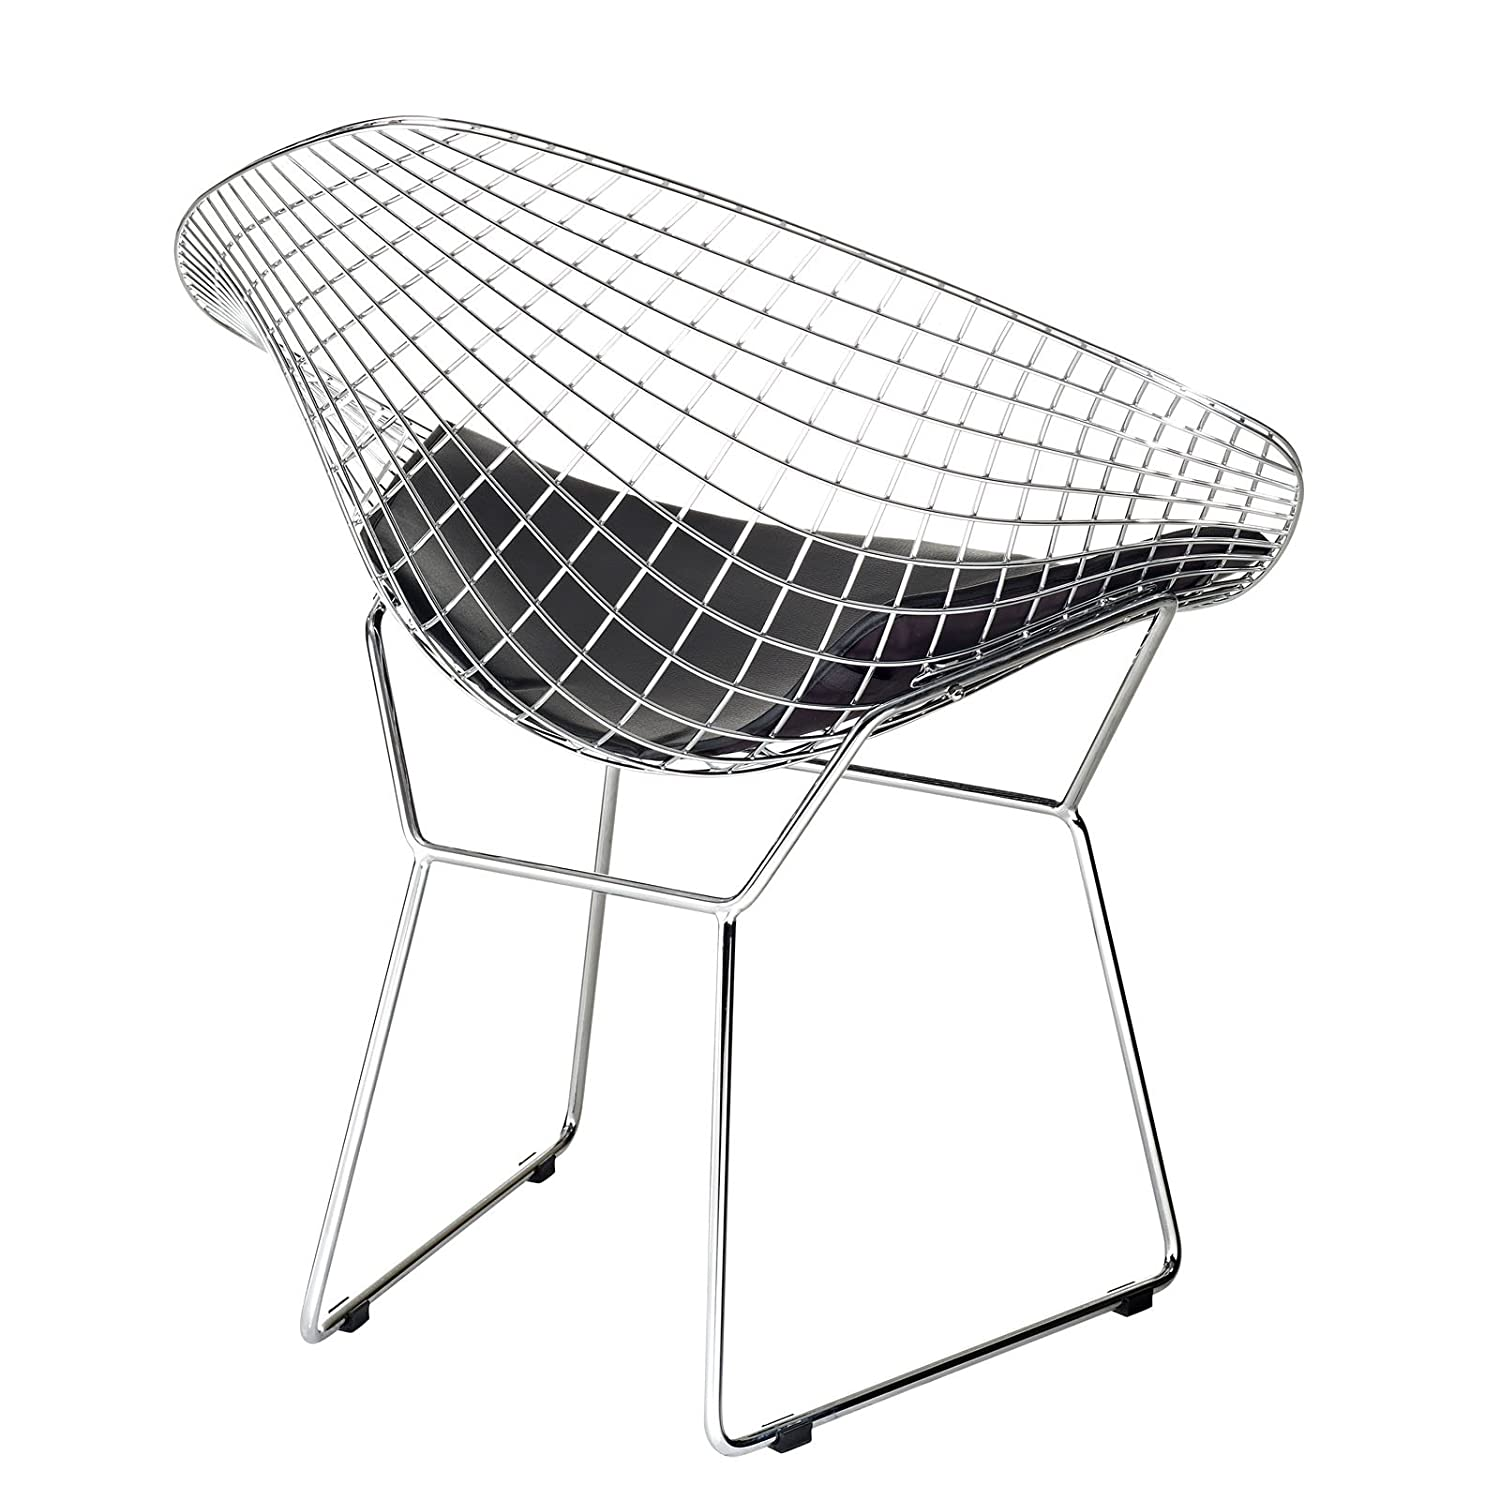 Bertoia diamond chair black - Bertoia Diamond Chair Black 11